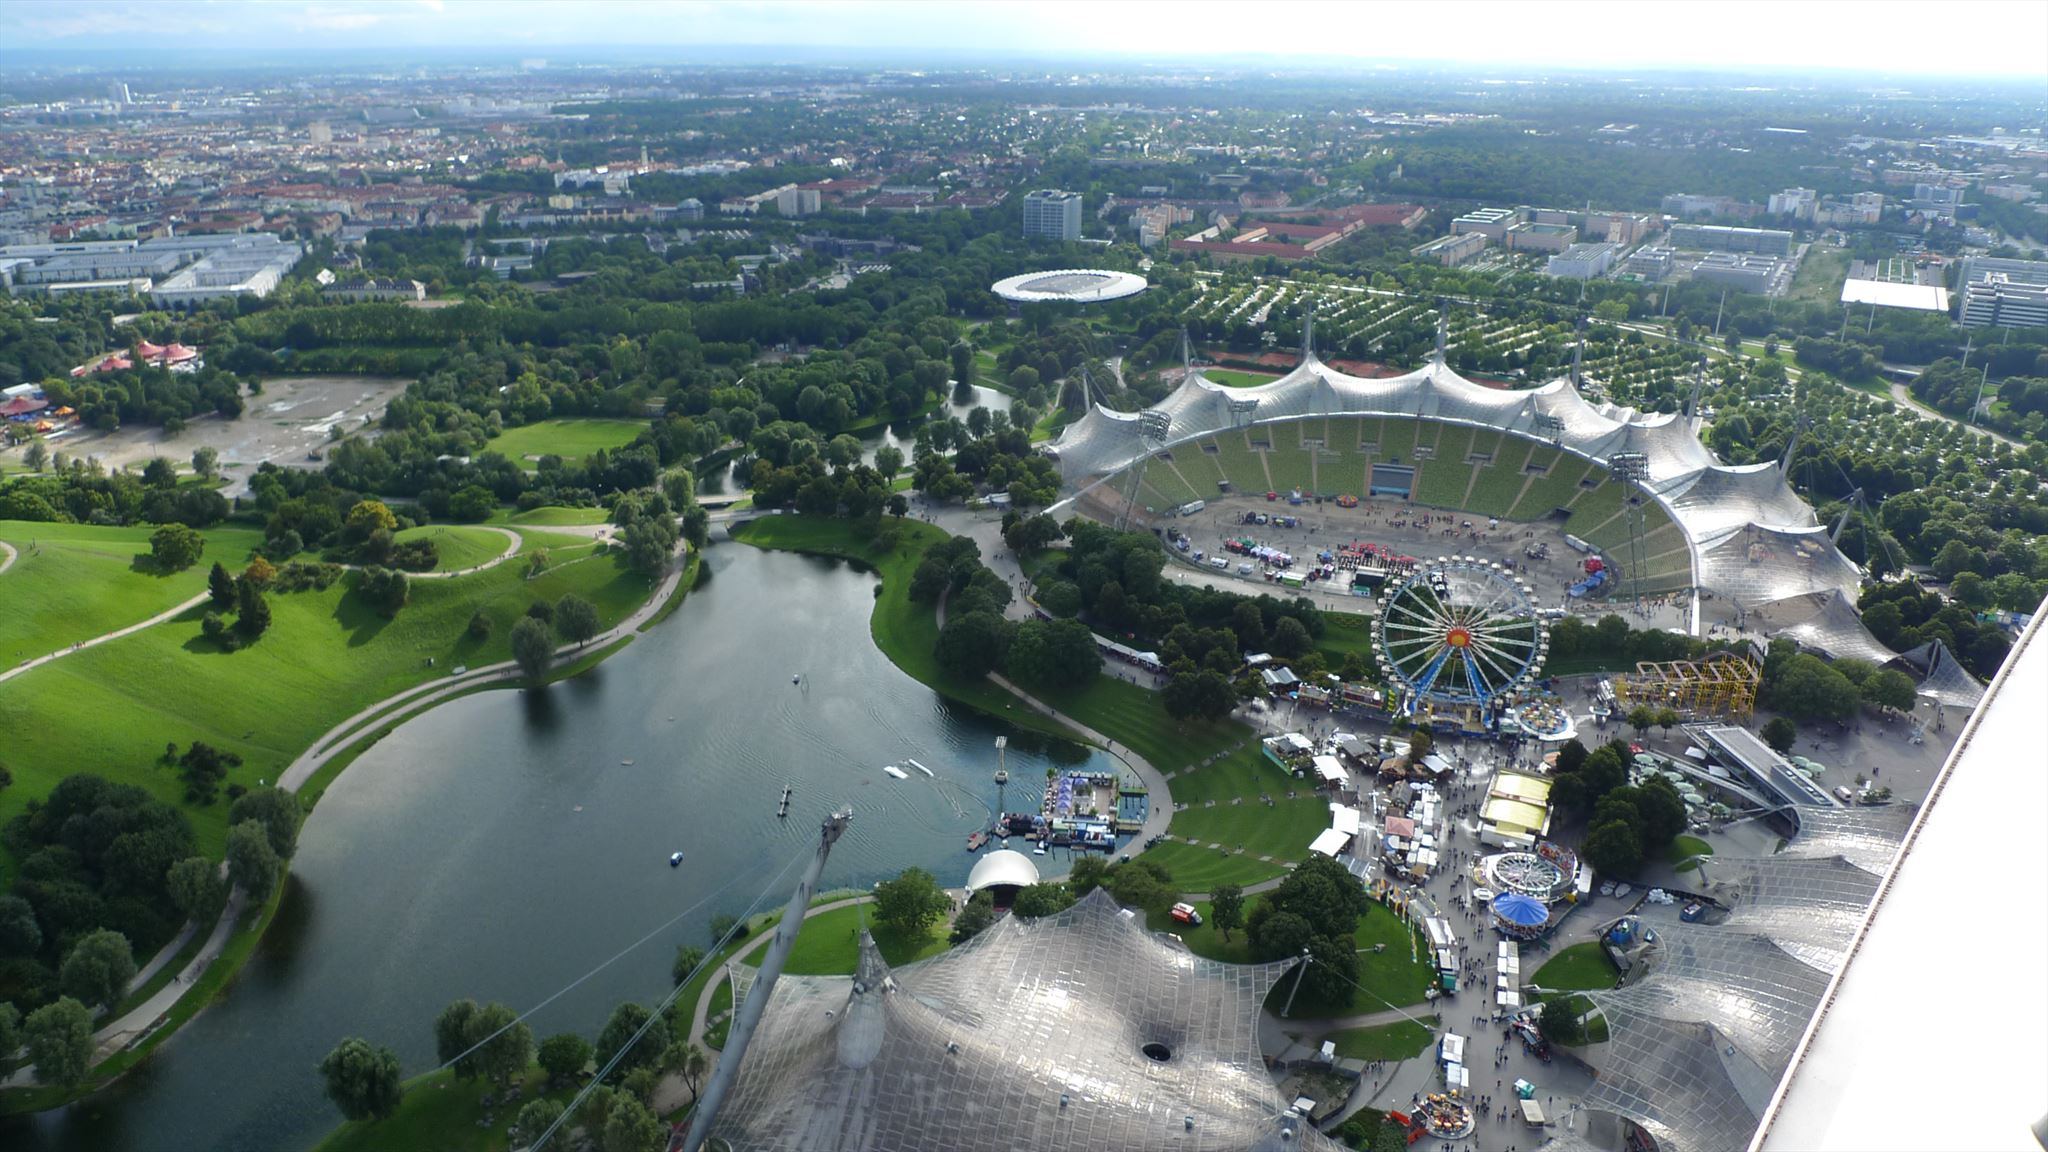 Event Grounds-Photo Credit: vossis 71